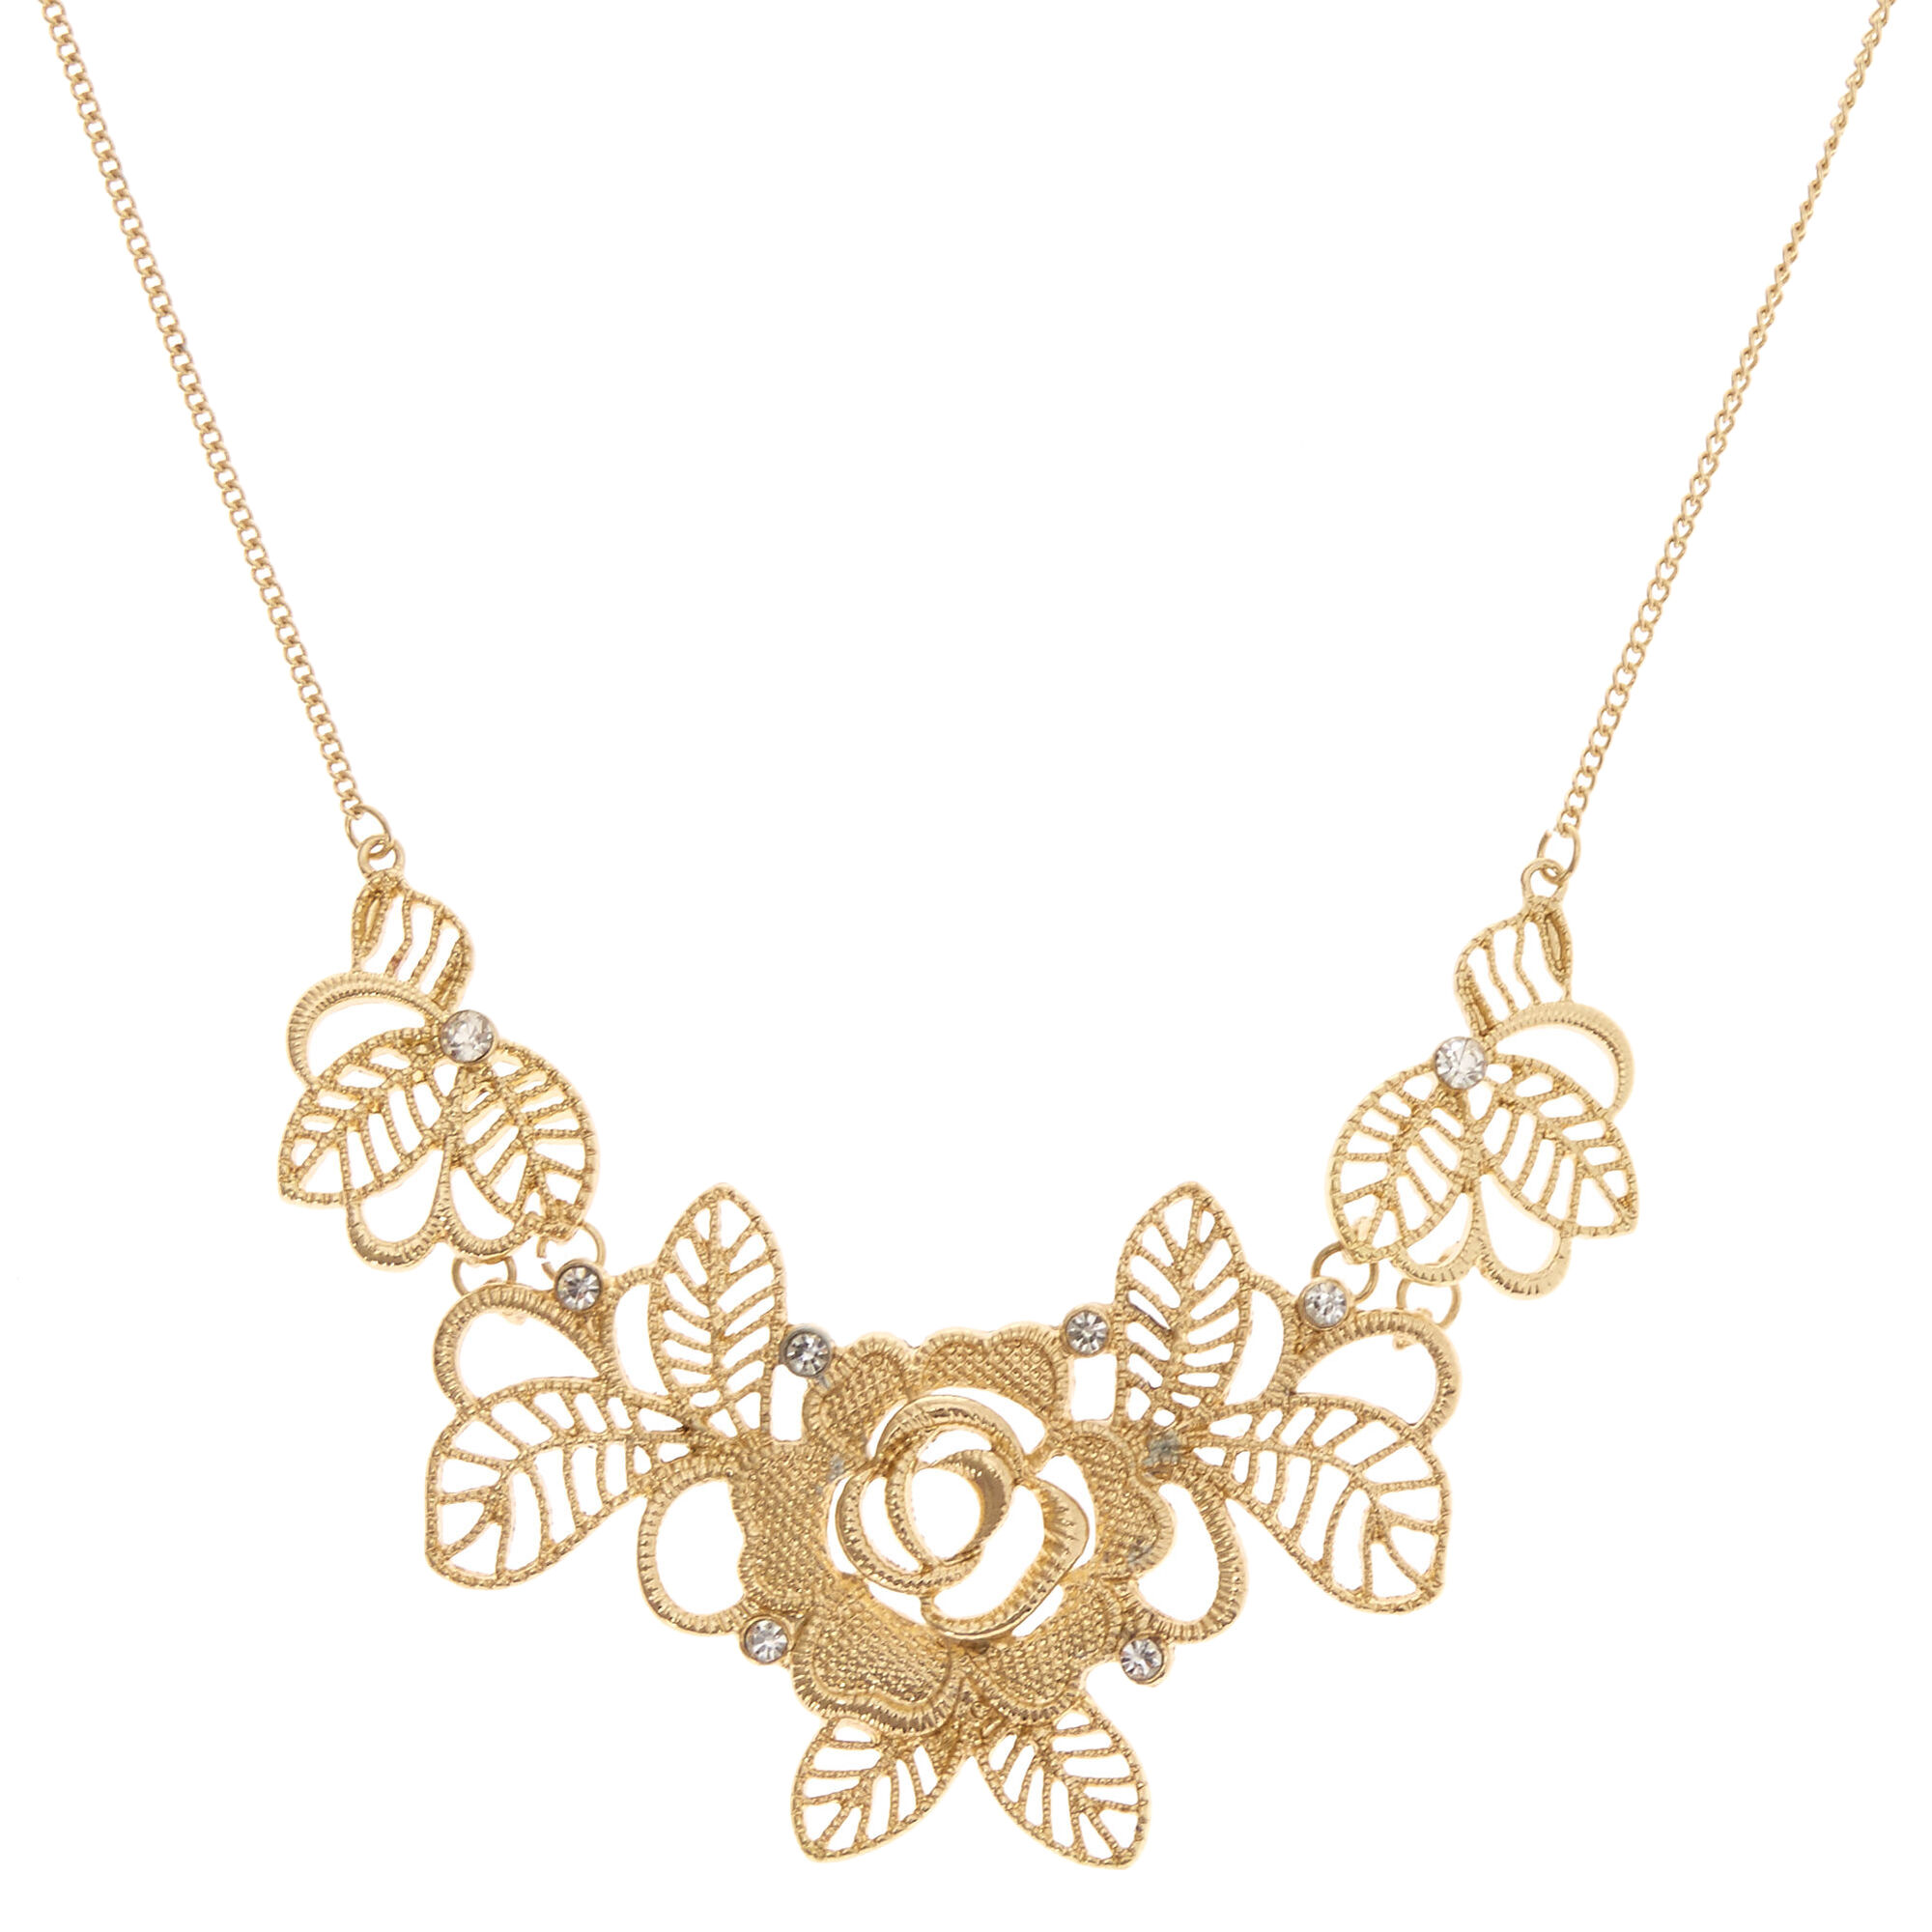 goddess necklace statement necklaces image gold rose tone